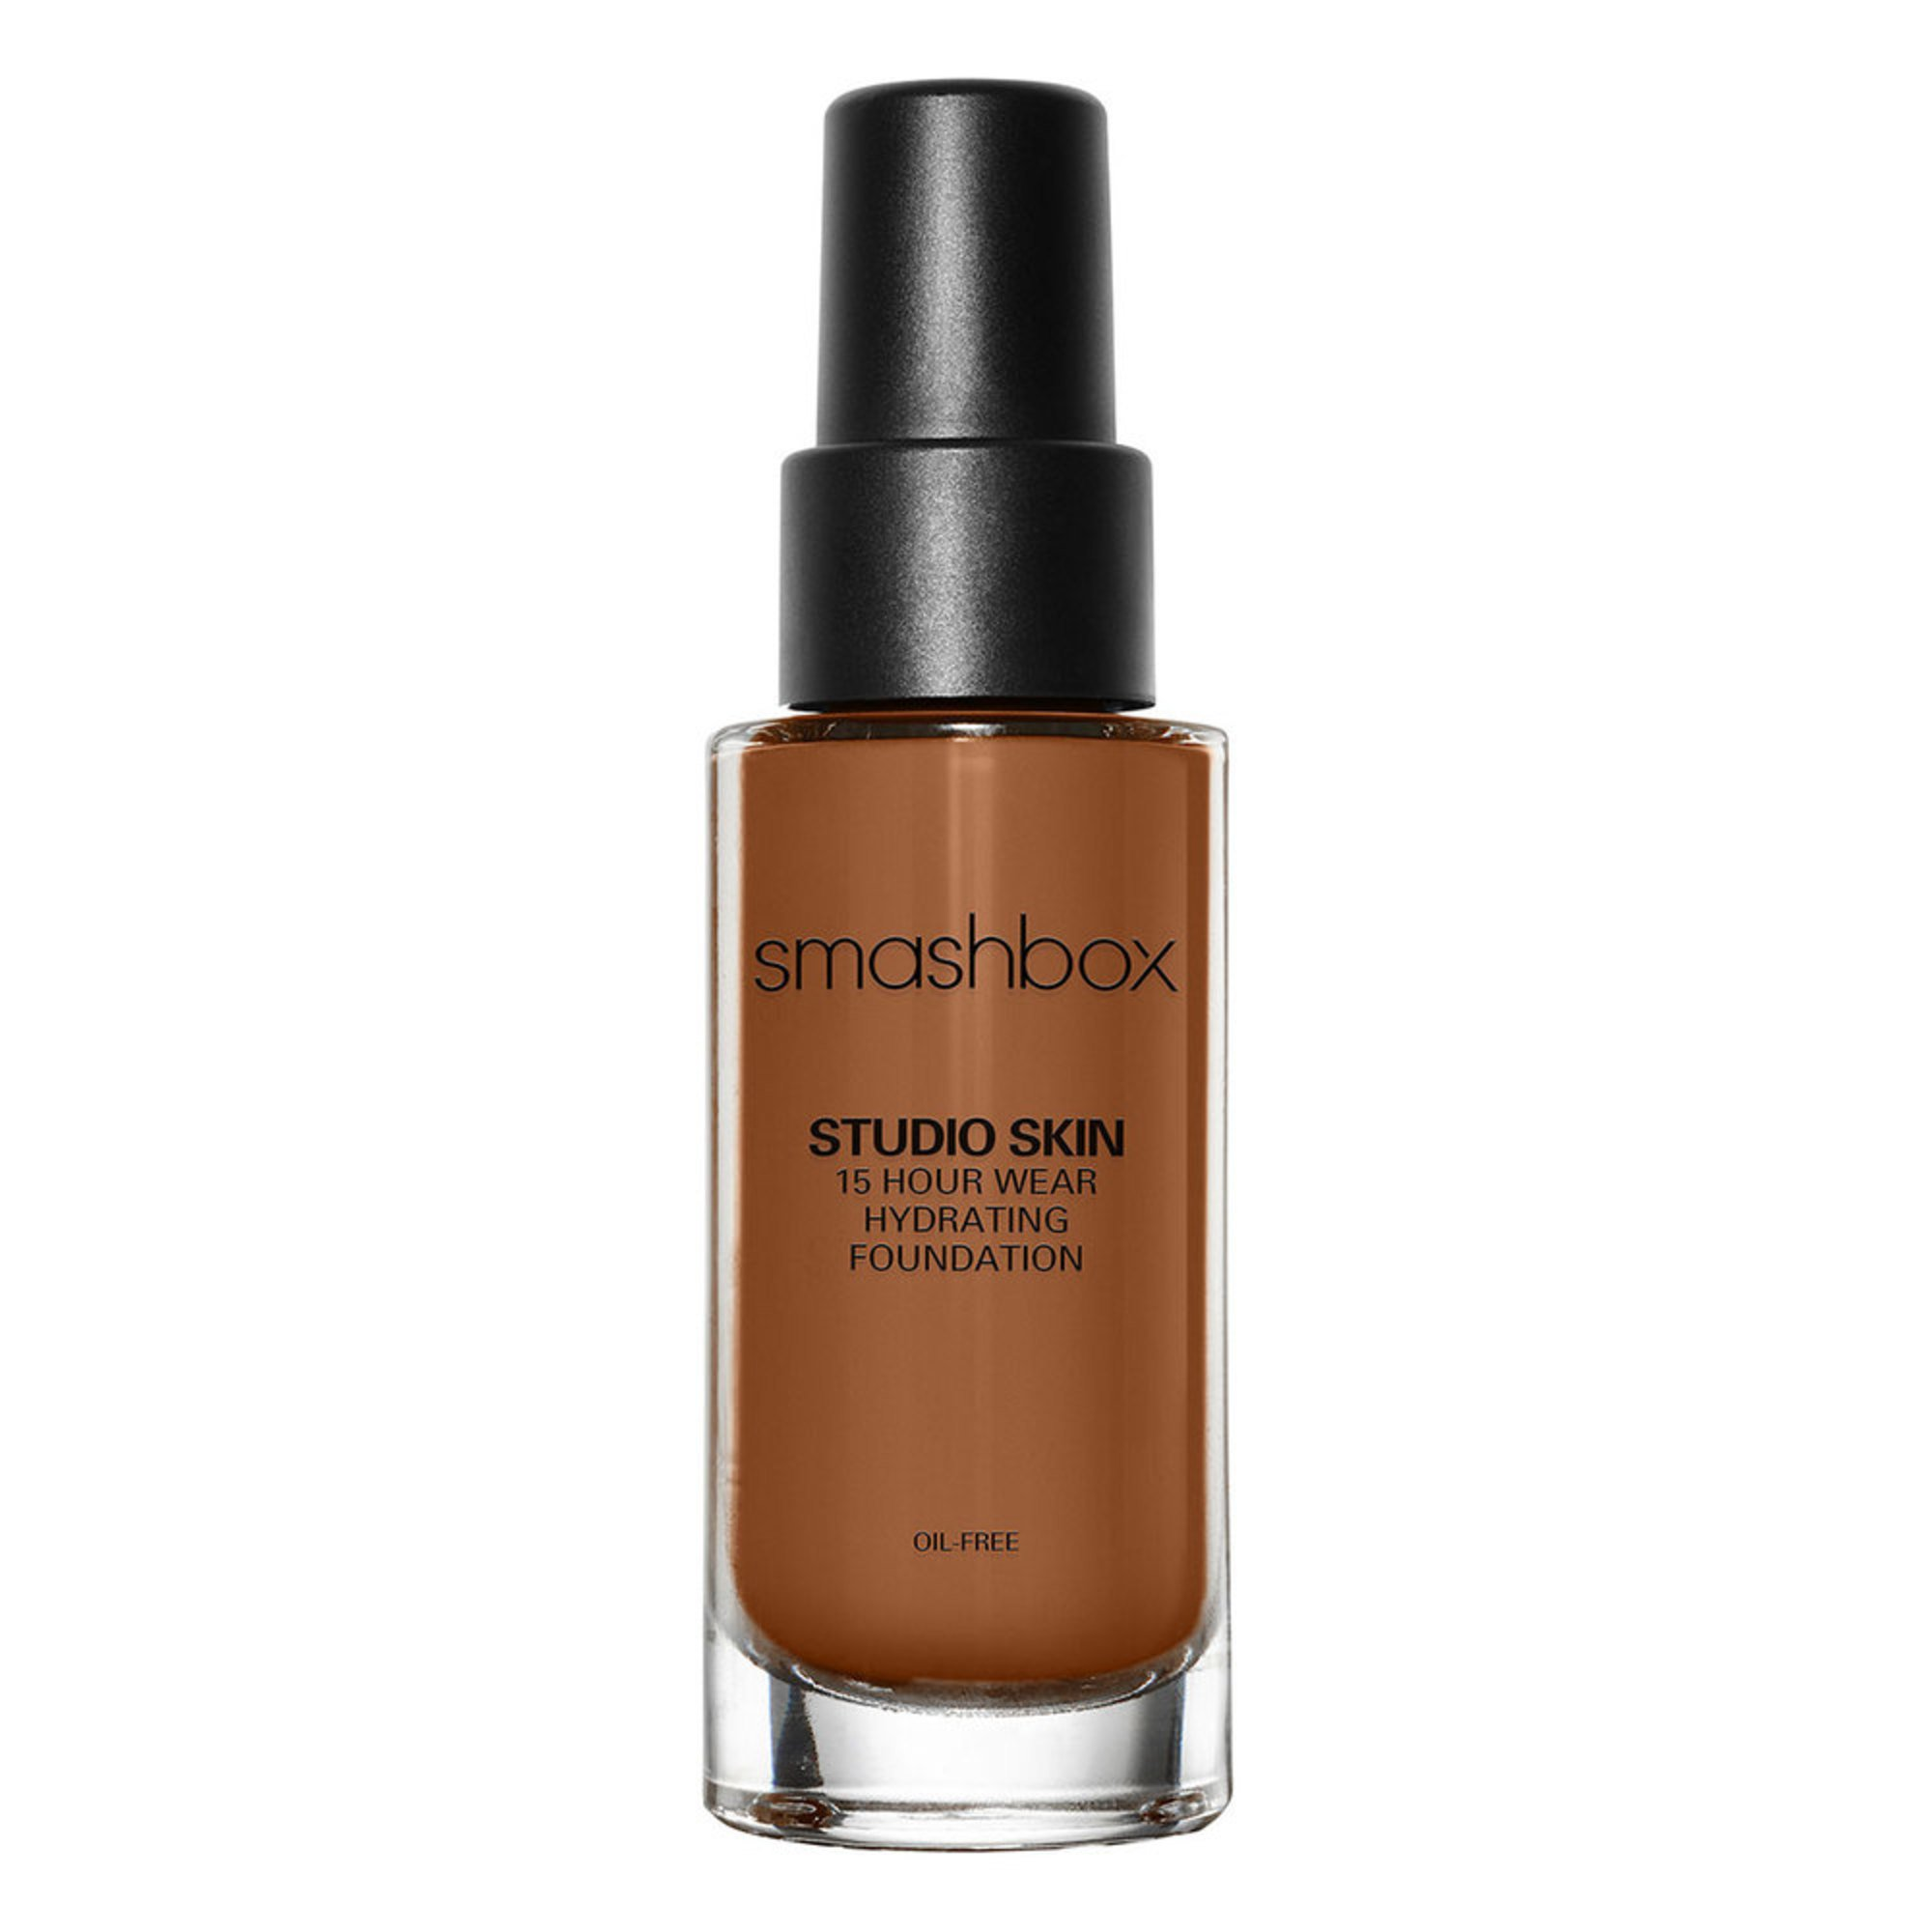 Photo Finish Foundation Primer Primer The first step to any great close-up is great skin — skin that's free of fine lines and pores. That's one of the reasons why primer was the first product created at Smashbox .